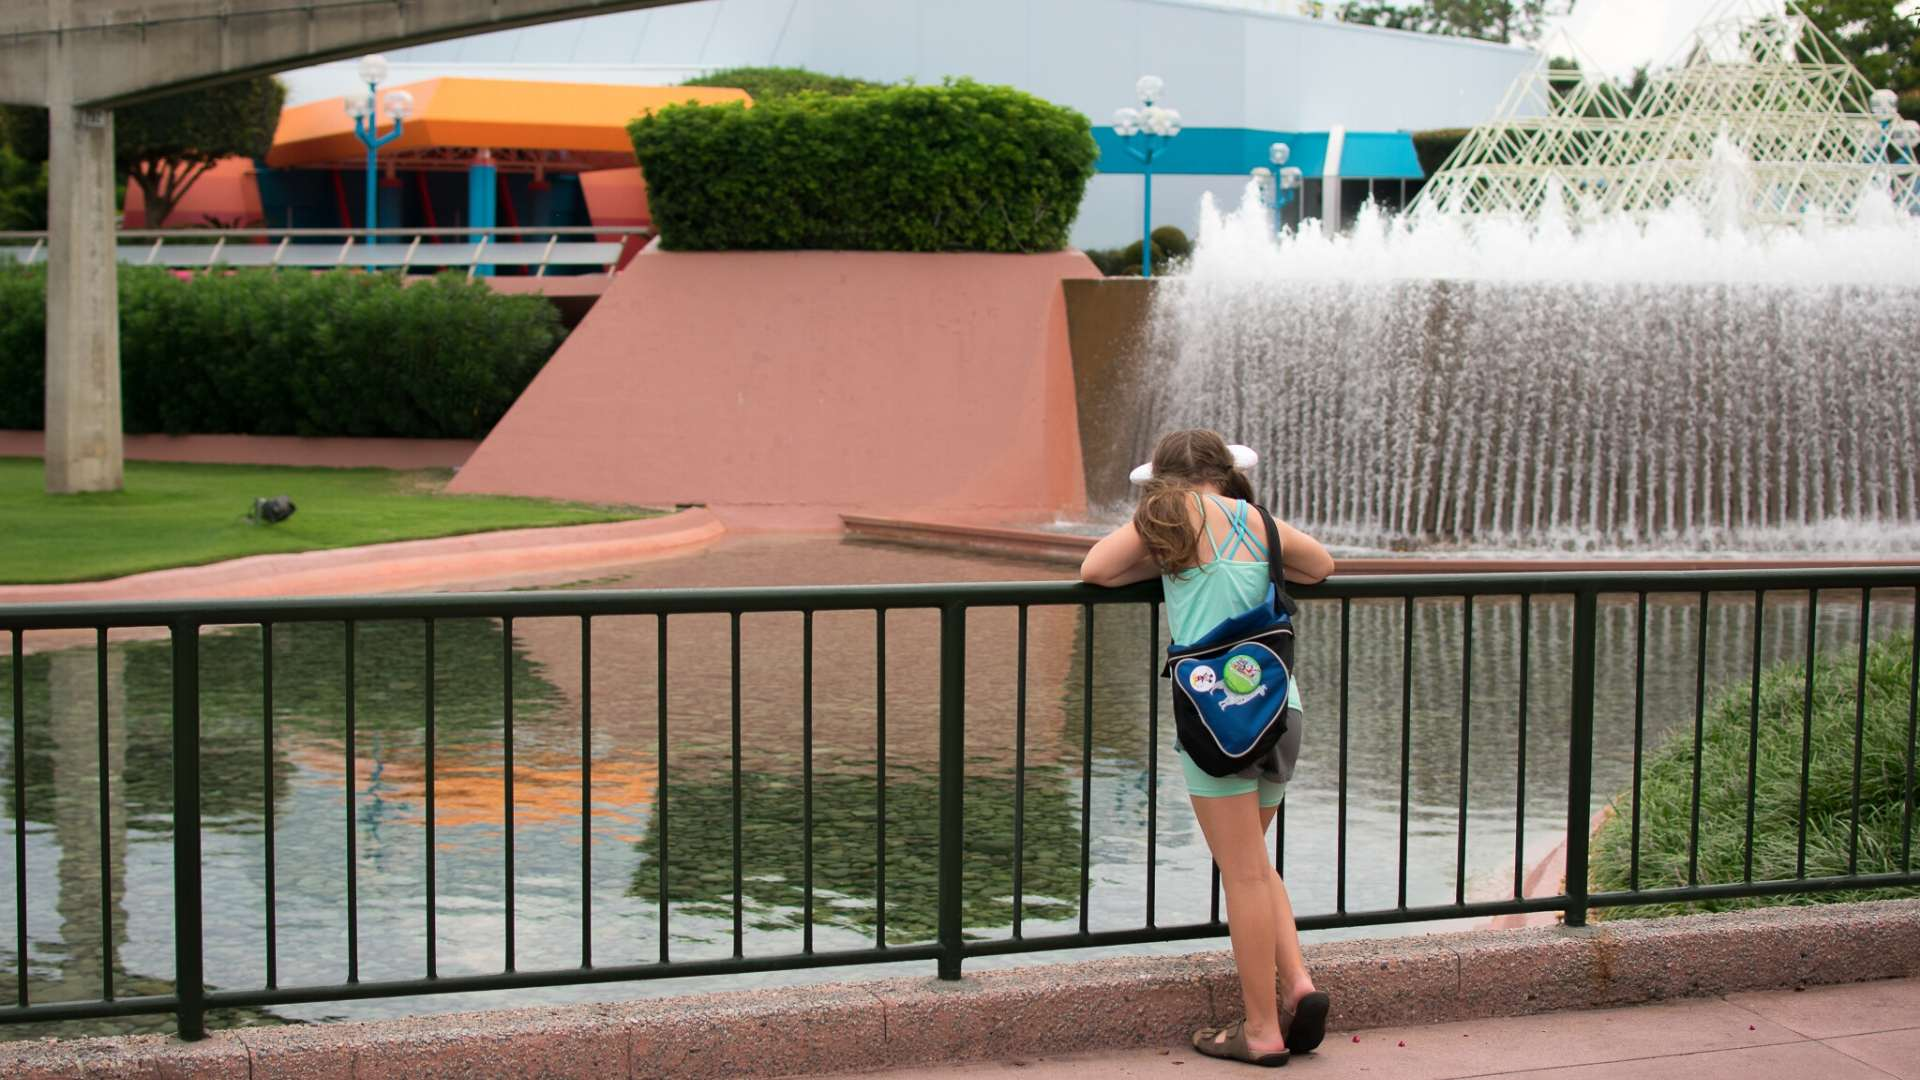 Epcot fountains